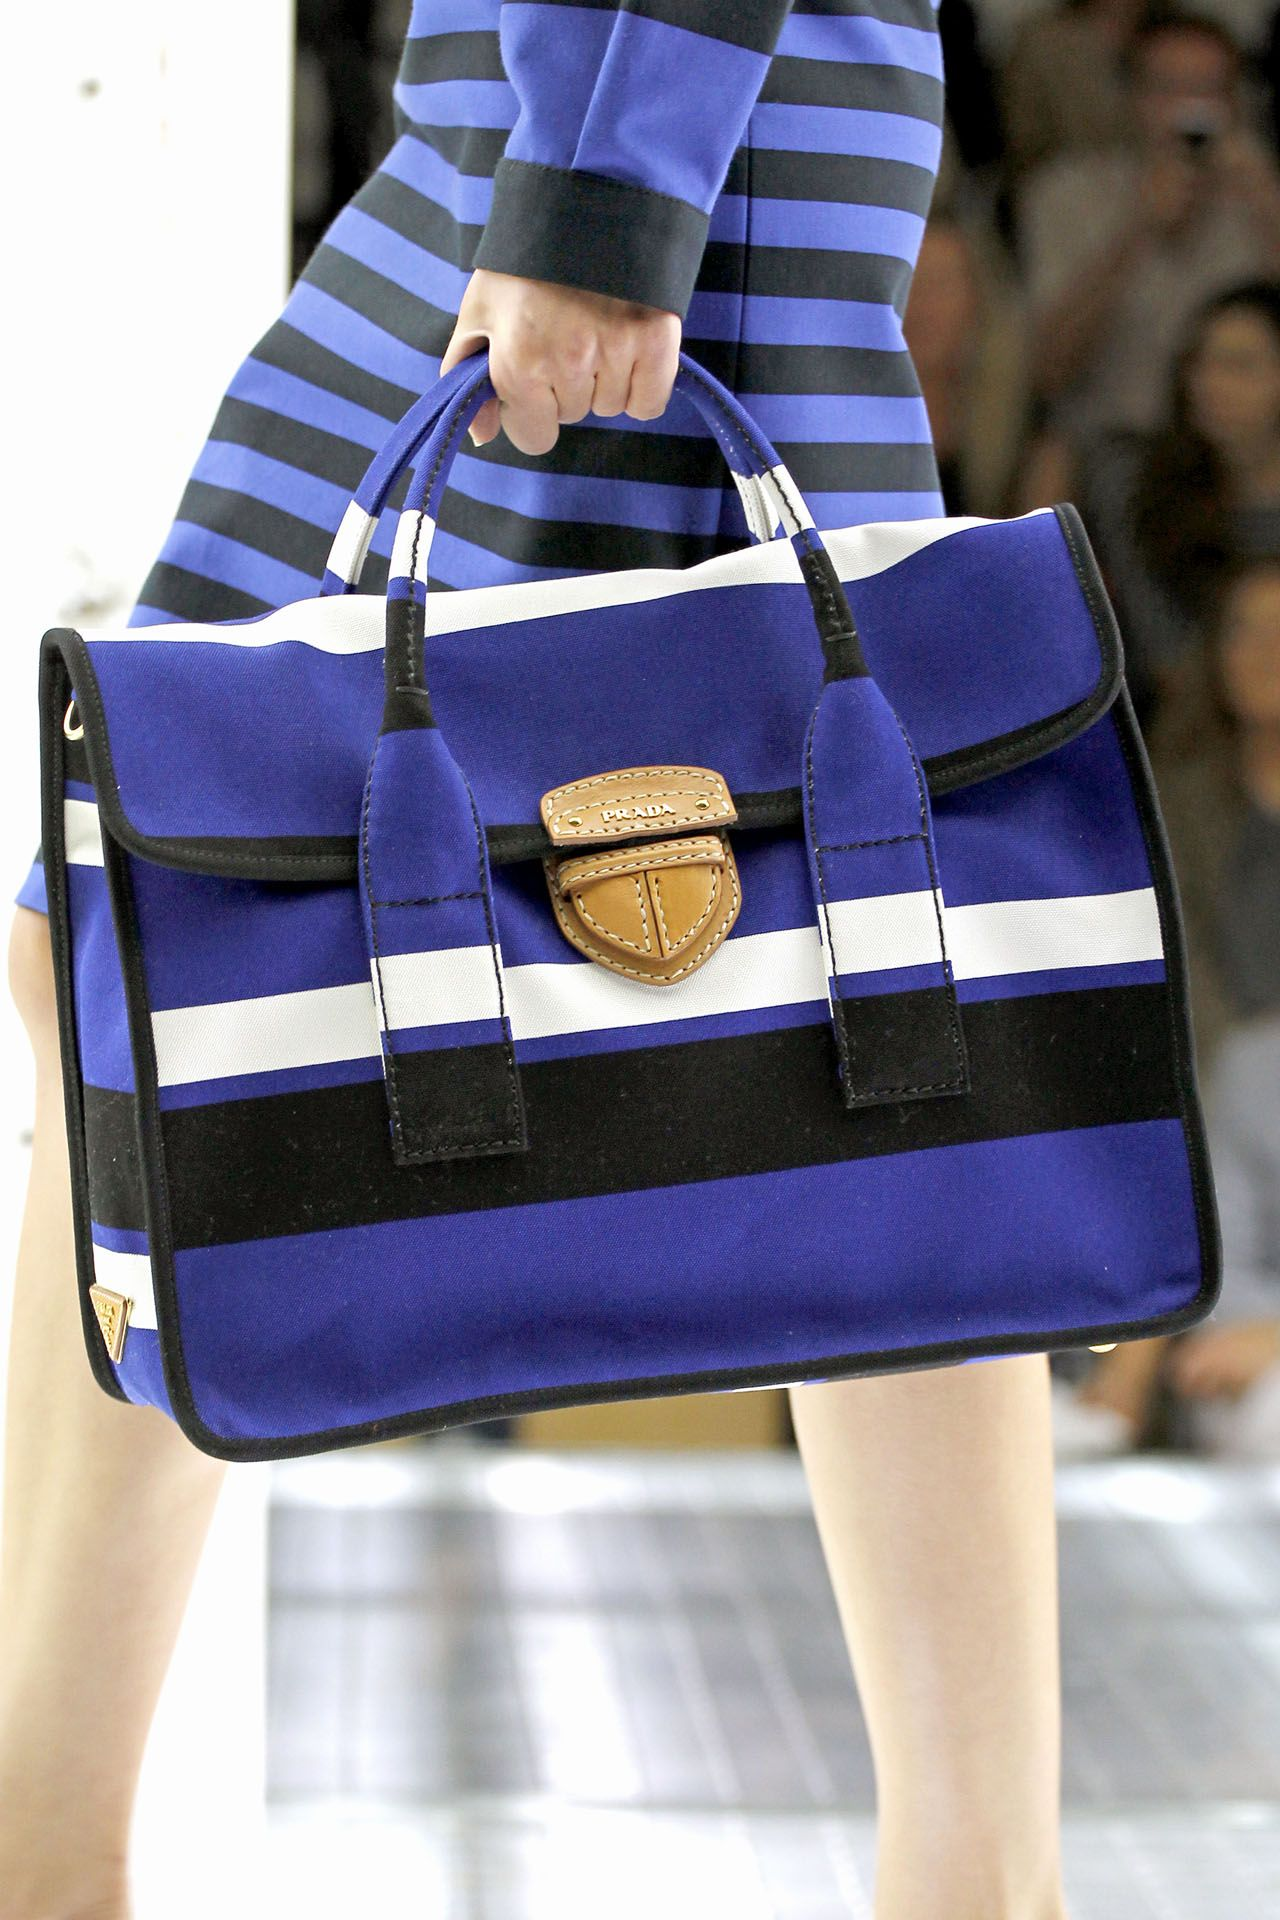 7f1f4c8bfbd9 prada striped bag - Google Search